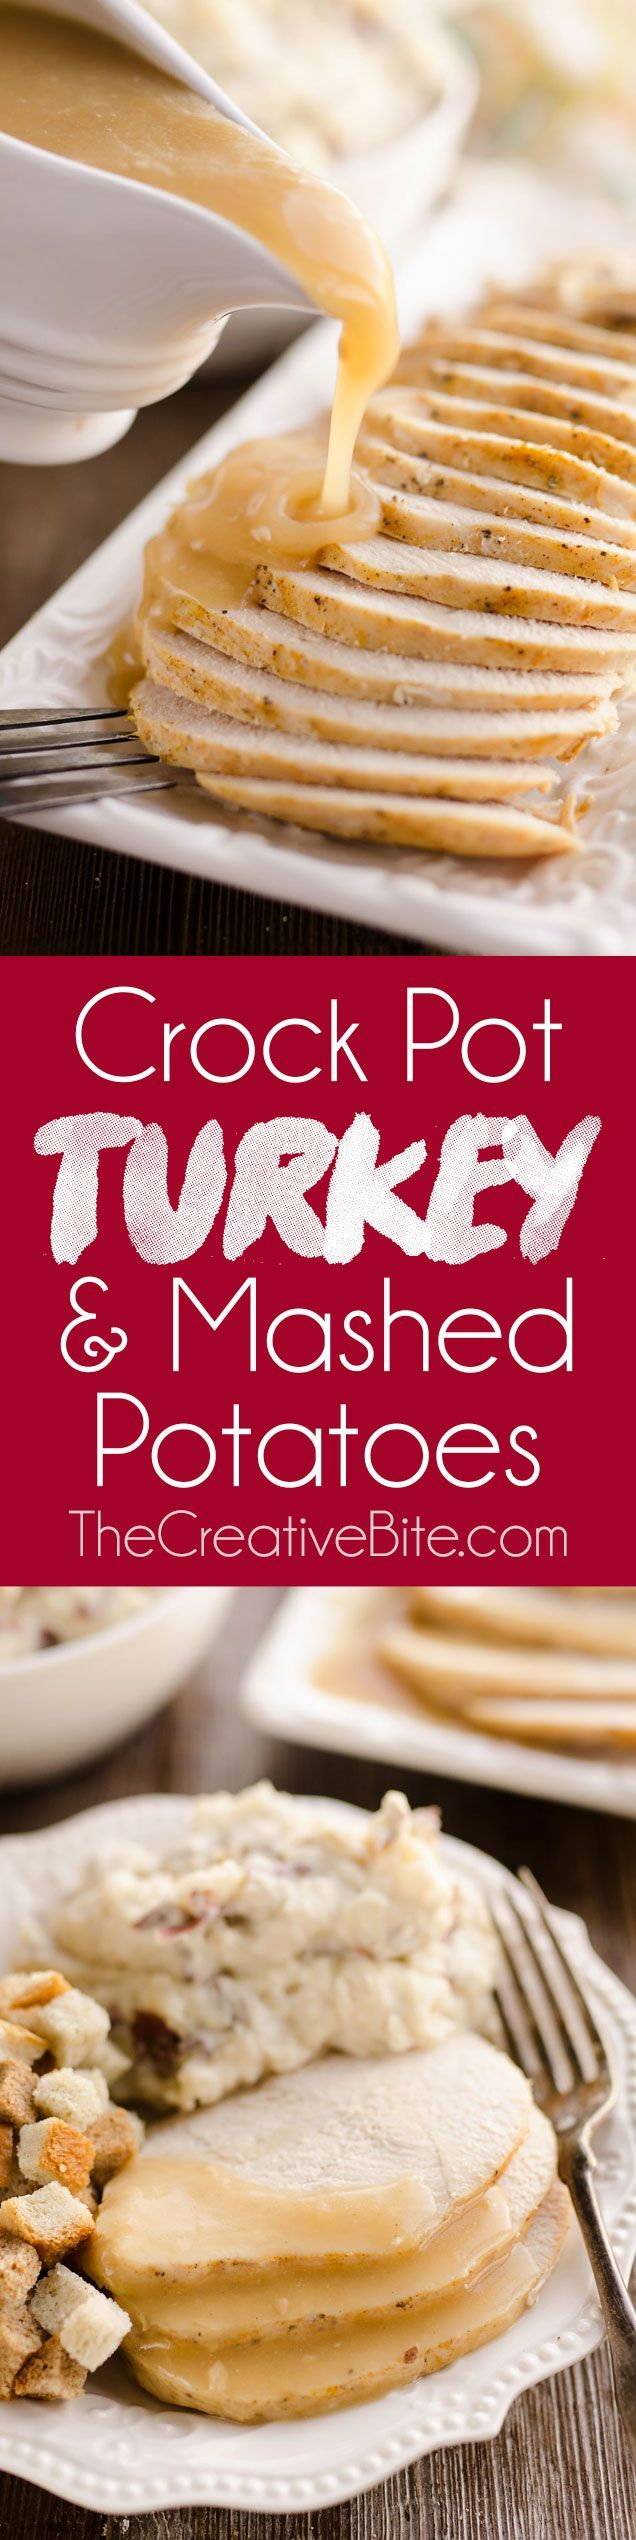 Crock Pot Turkey Breast & Garlic Mashed Potatoes is an easy one pot recipe made in your slow cooker perfect for a small holiday dinner or simple weeknight meal. Jennie-O Oven Ready  Boneless Turkey Breast, potatoes and gravy come together to make a delicious all-in-one recipe! #Jennie-O #SwitchCircle